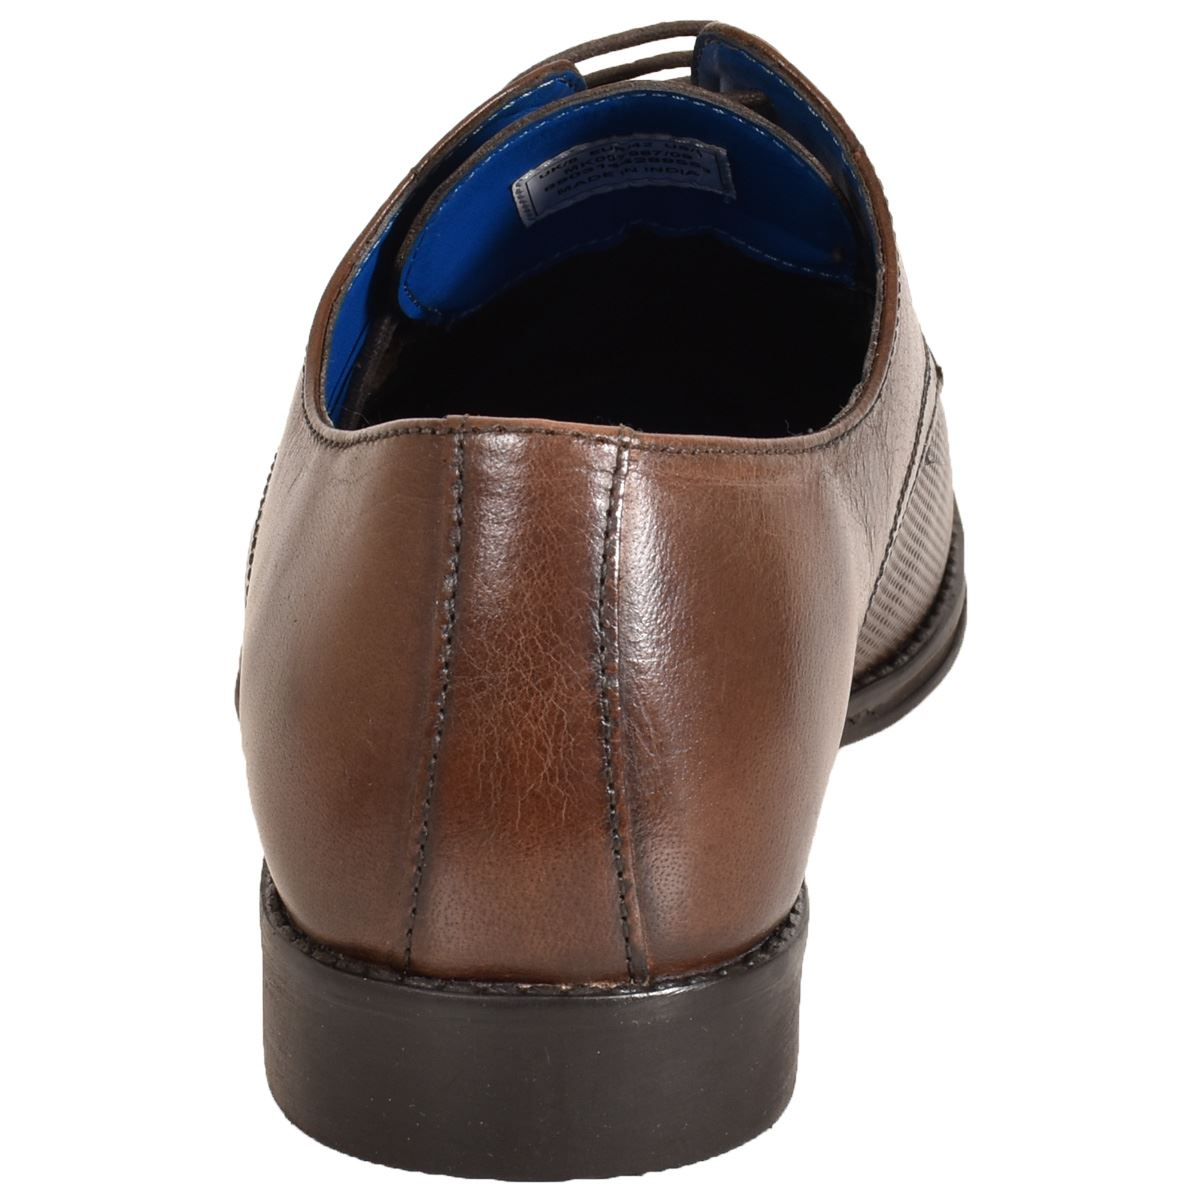 Mens-UK-Style-Leather-Lining-Formal-Office-Wedding-Smart-Work-Brogue-Shoes thumbnail 49